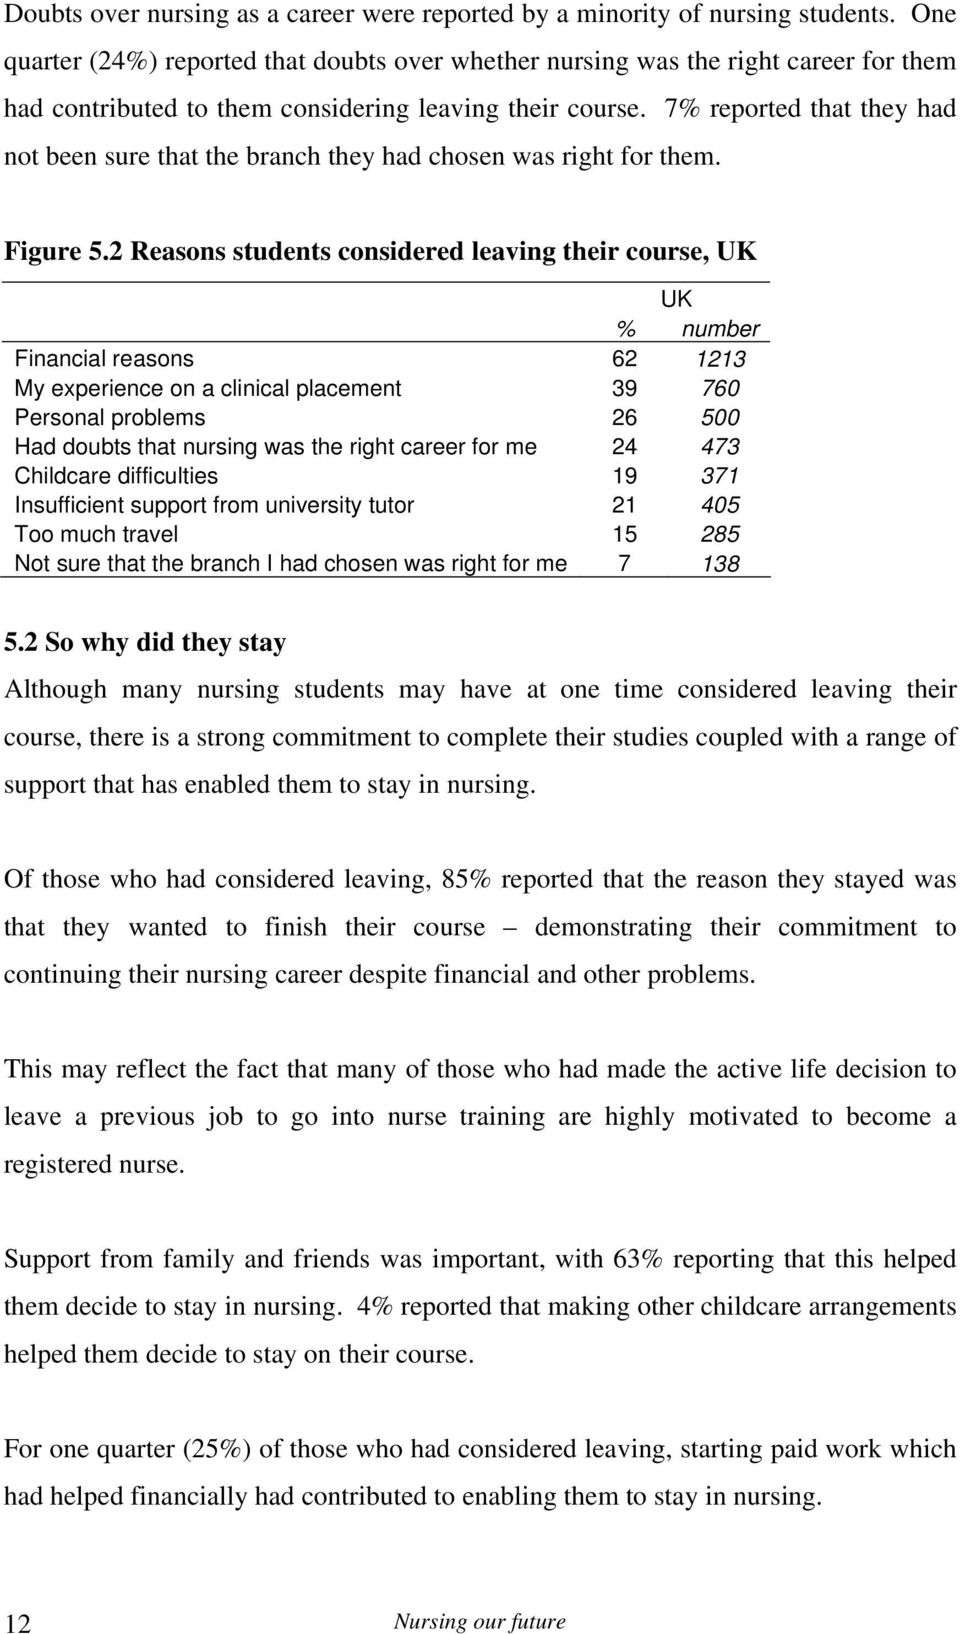 7% reported that they had not been sure that the branch they had chosen was right for them. Figure 5.